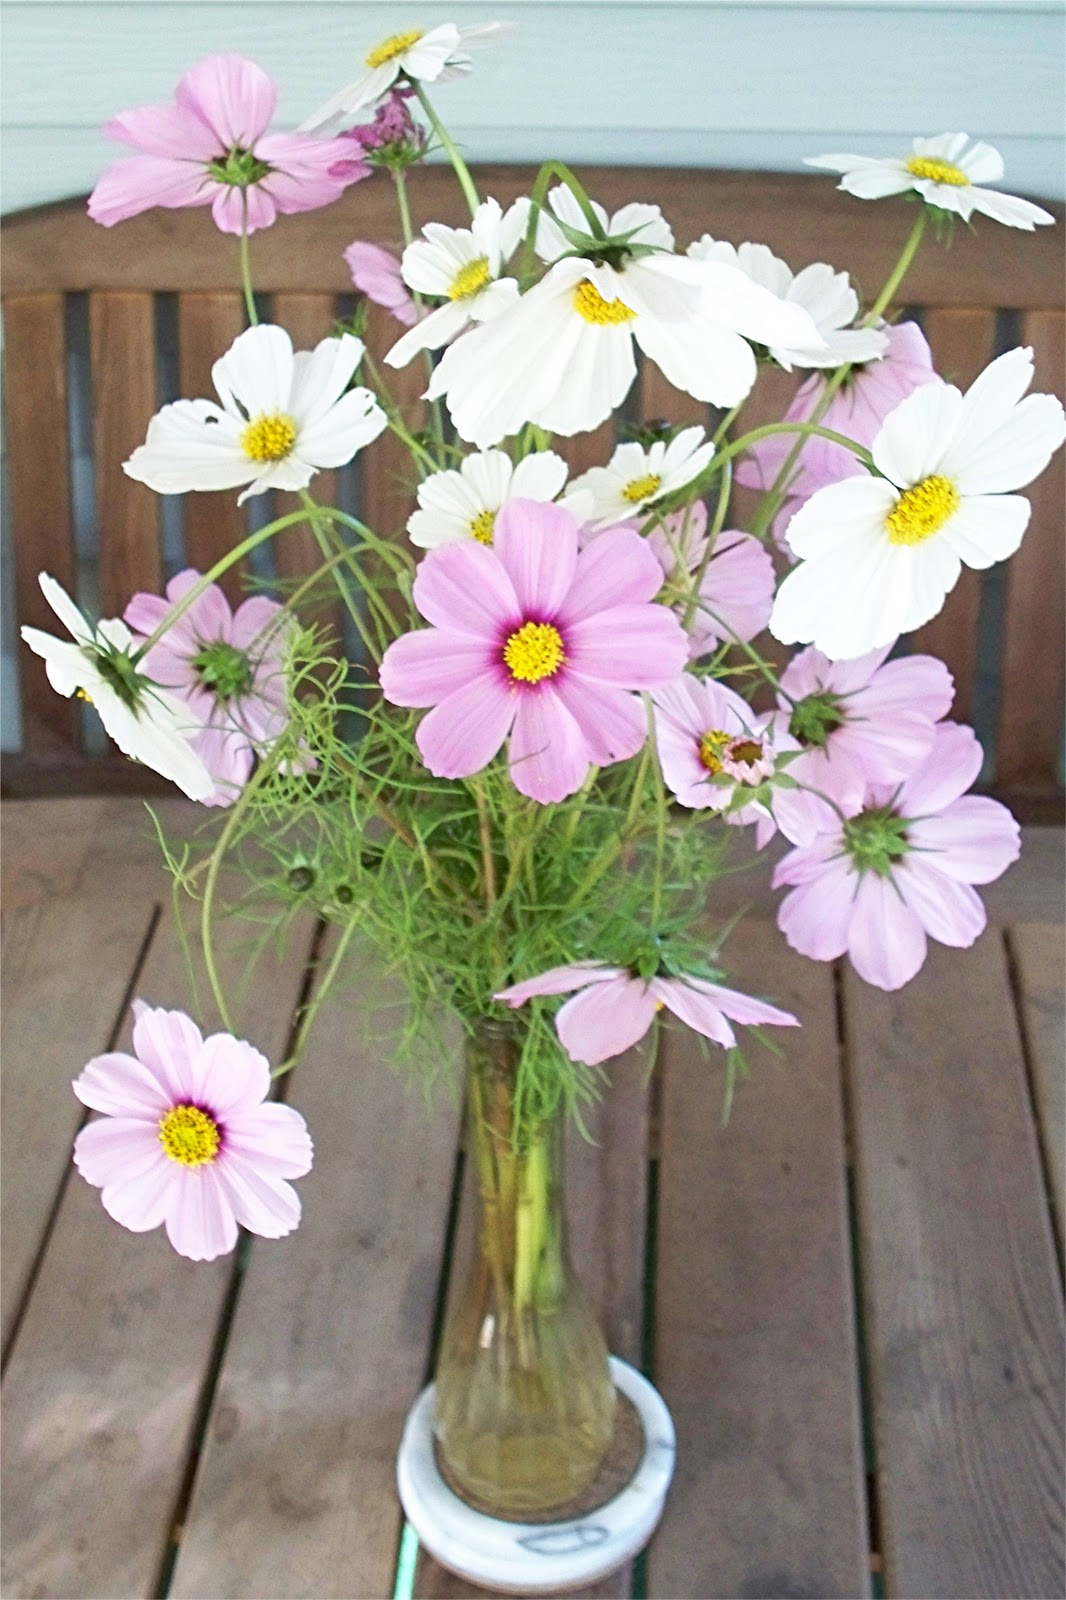 Old Fashioned Cosmos Flower Bouquet Ideas - Best Evening Gown ...